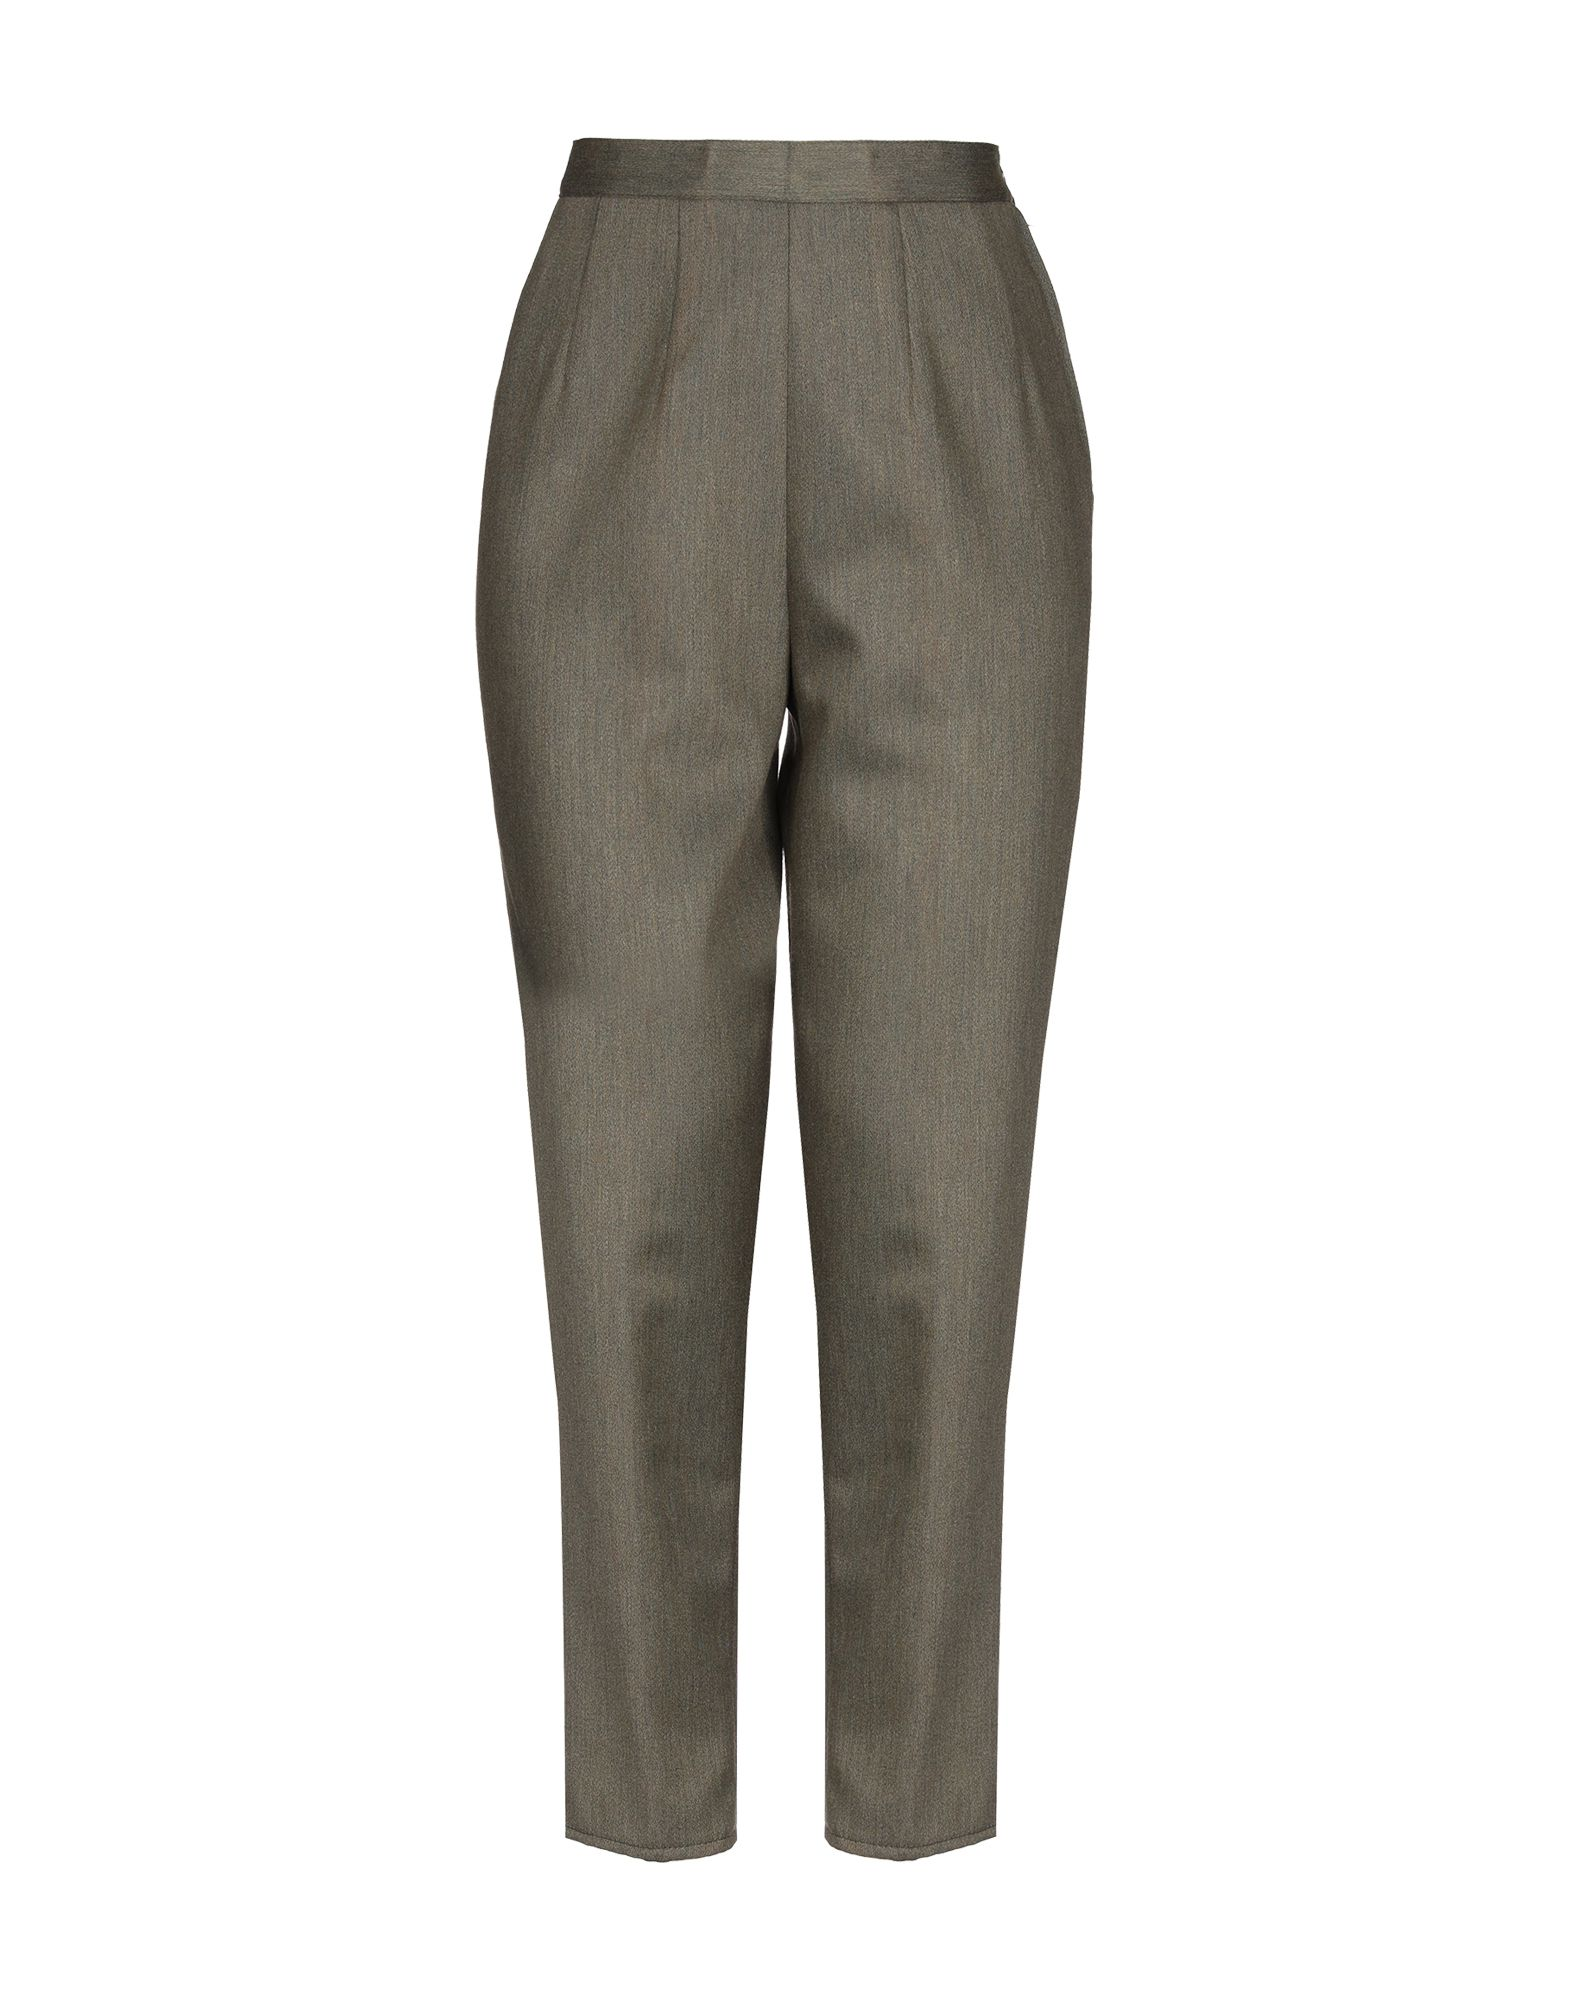 PADÌ COUTURE | PADÌ COUTURE Casual pants | Goxip